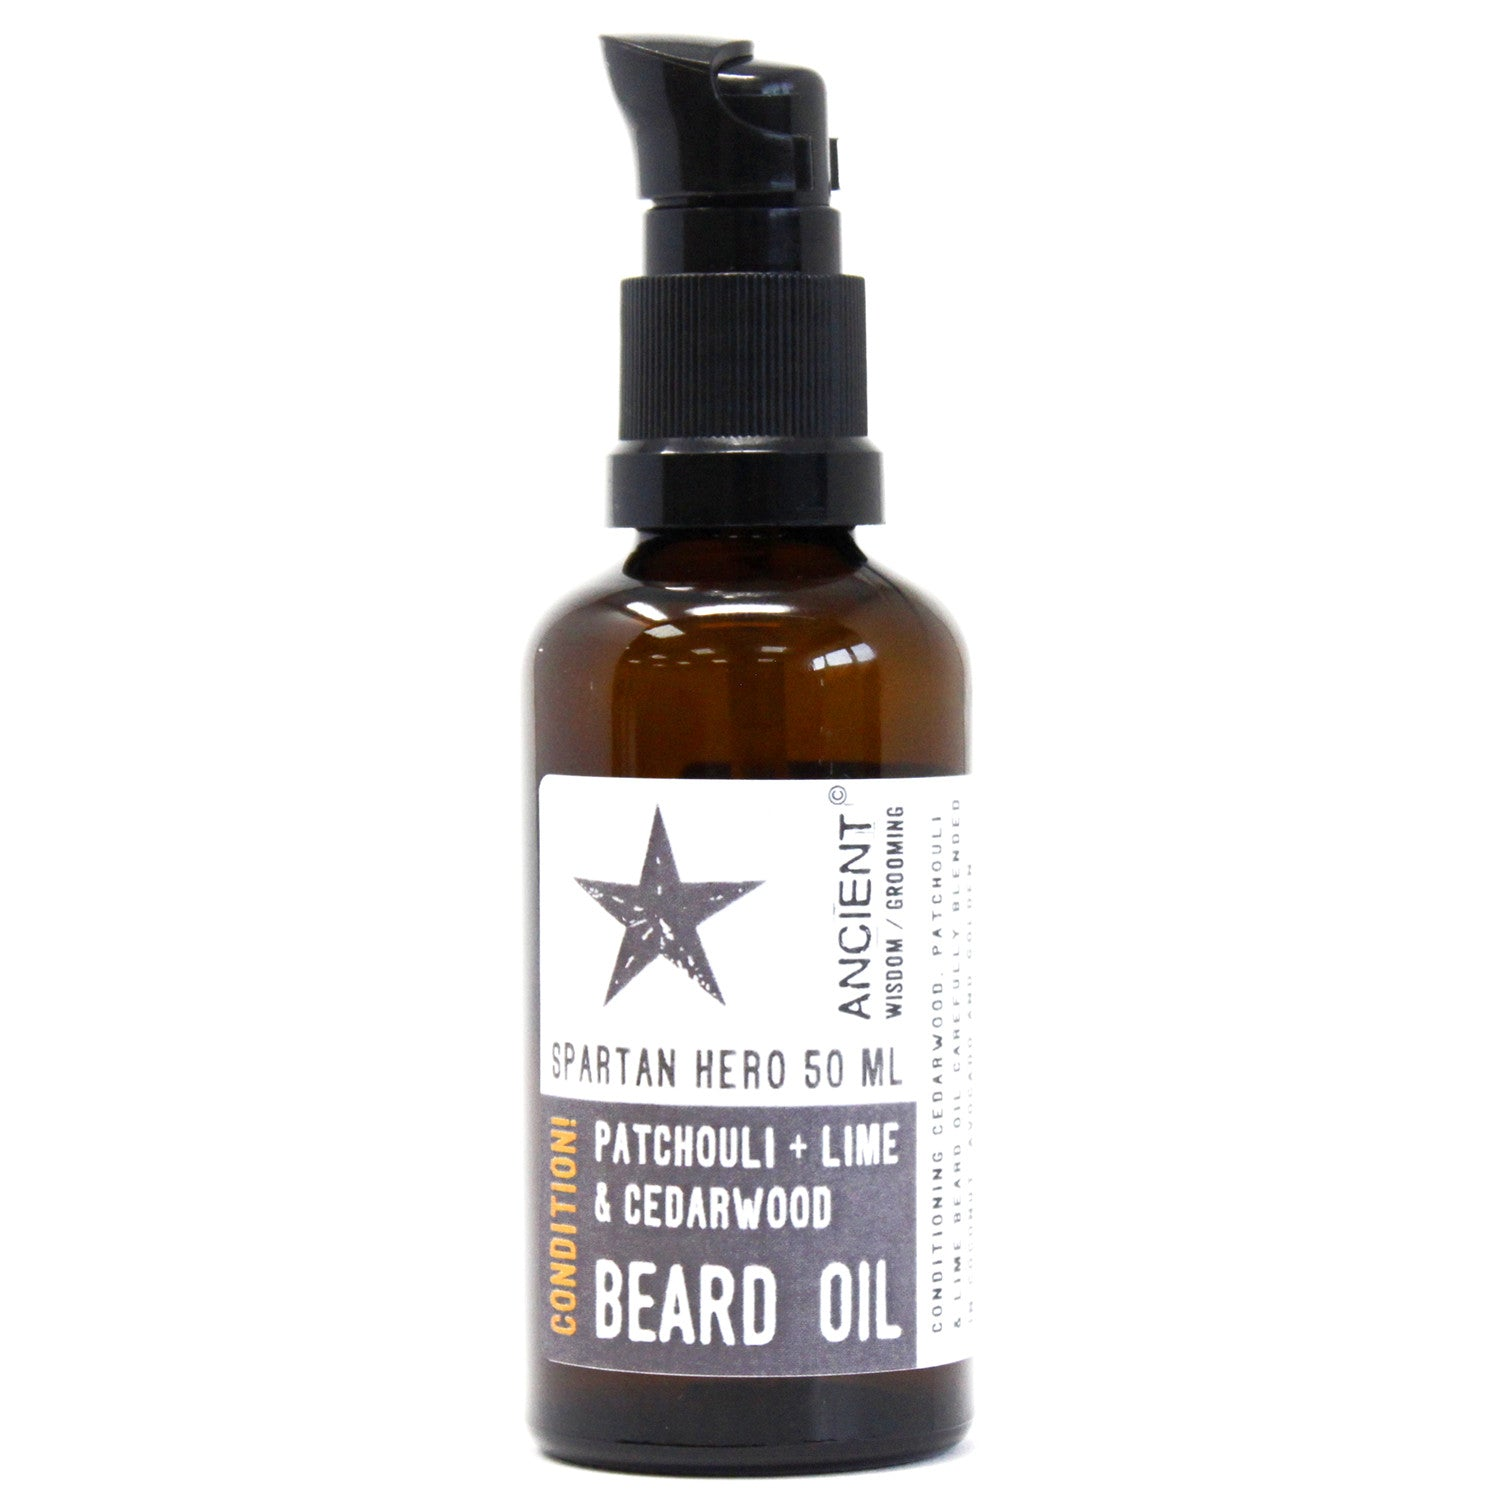 Beard Oil - Spartan Hero - Condition! 50ml